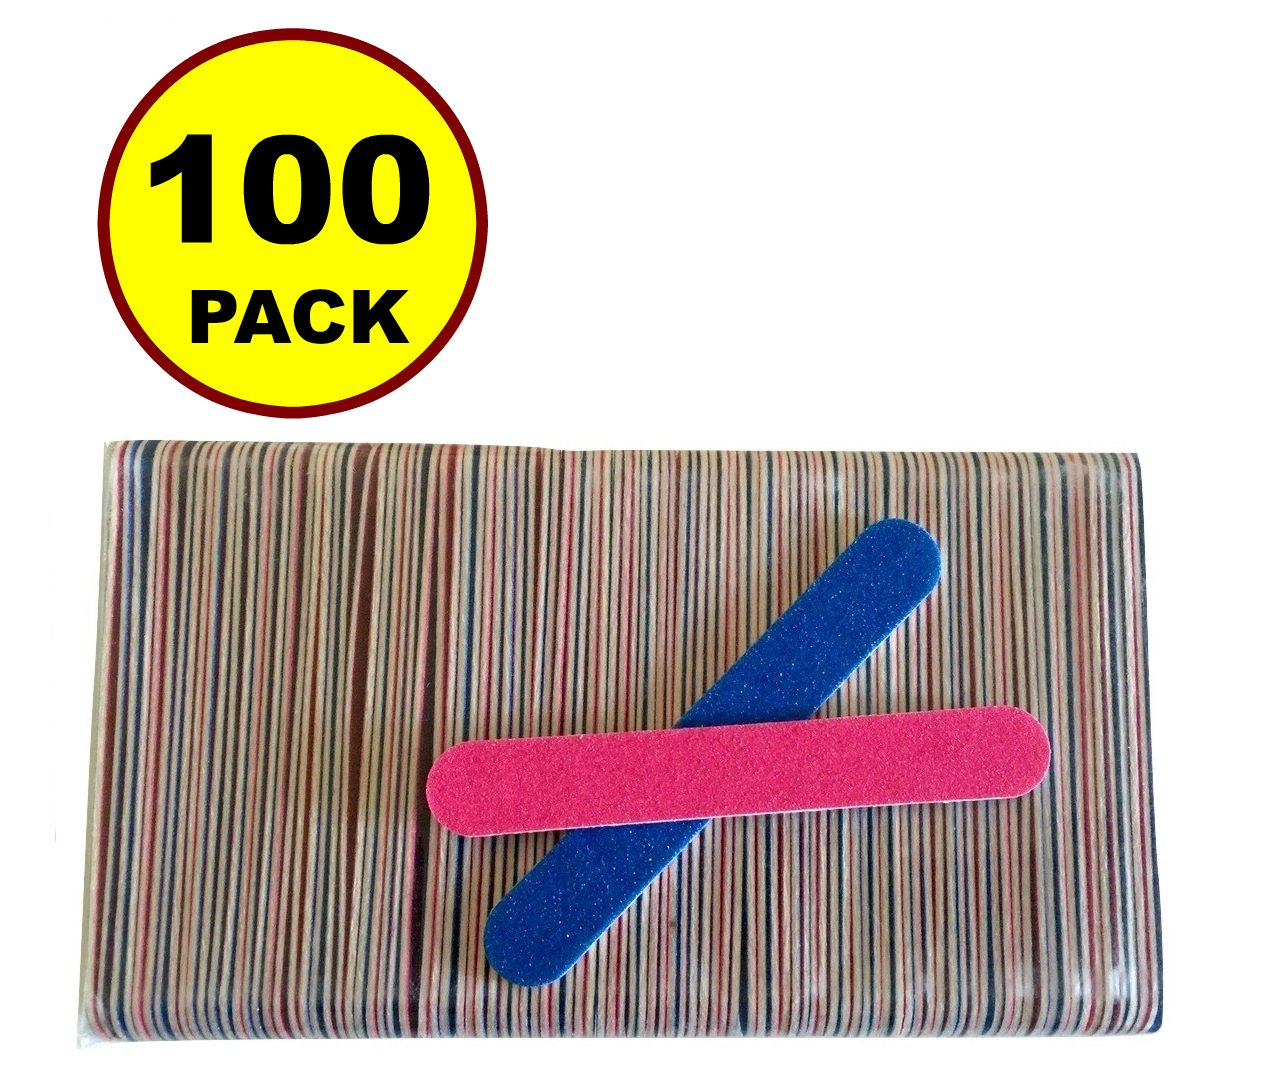 NEW 100 PCS Disposable Professional Beauty Care Nail File 100/240 grit nail Buffer Buffing slim cresent tool Toddler Baby nail file JJMG